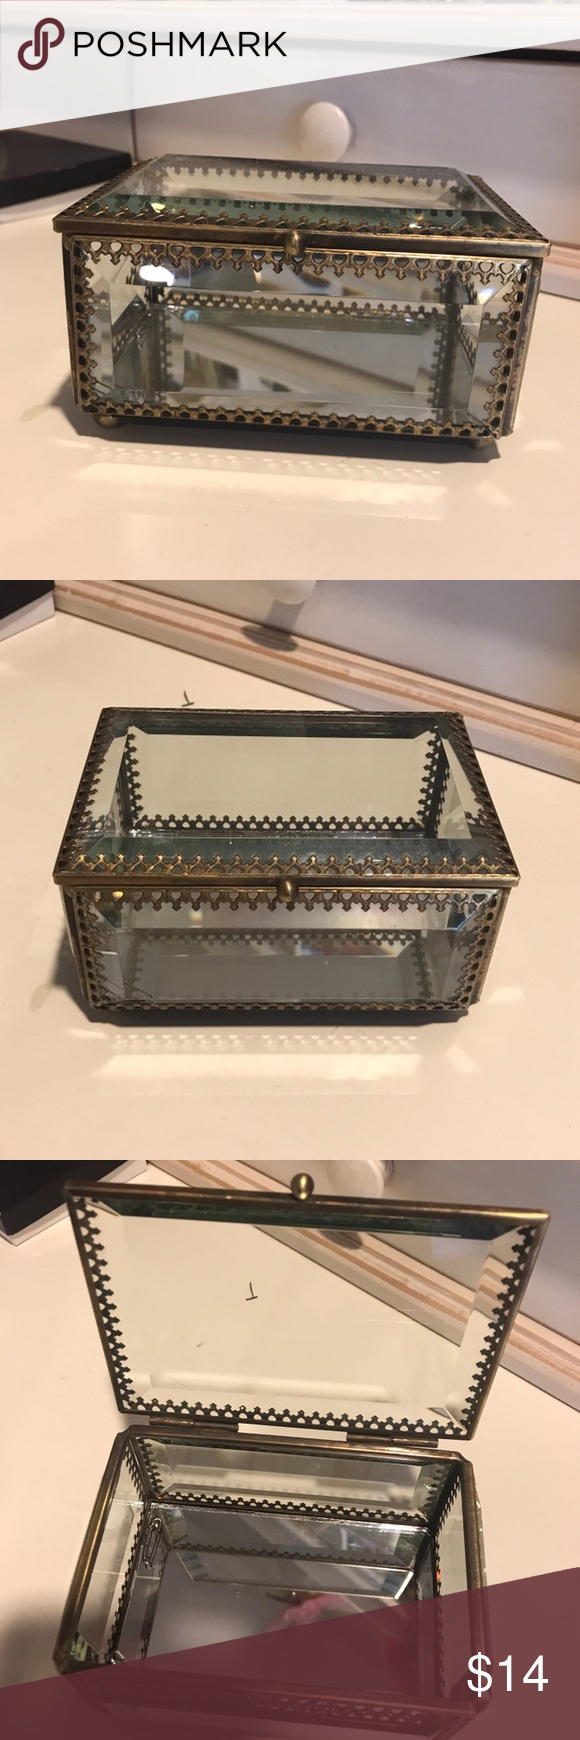 Nicole Miller Jewelry Box Beauteous Nicole Miller Jewelry Box Never Used Jewelry Boxbeautifulperfect Review